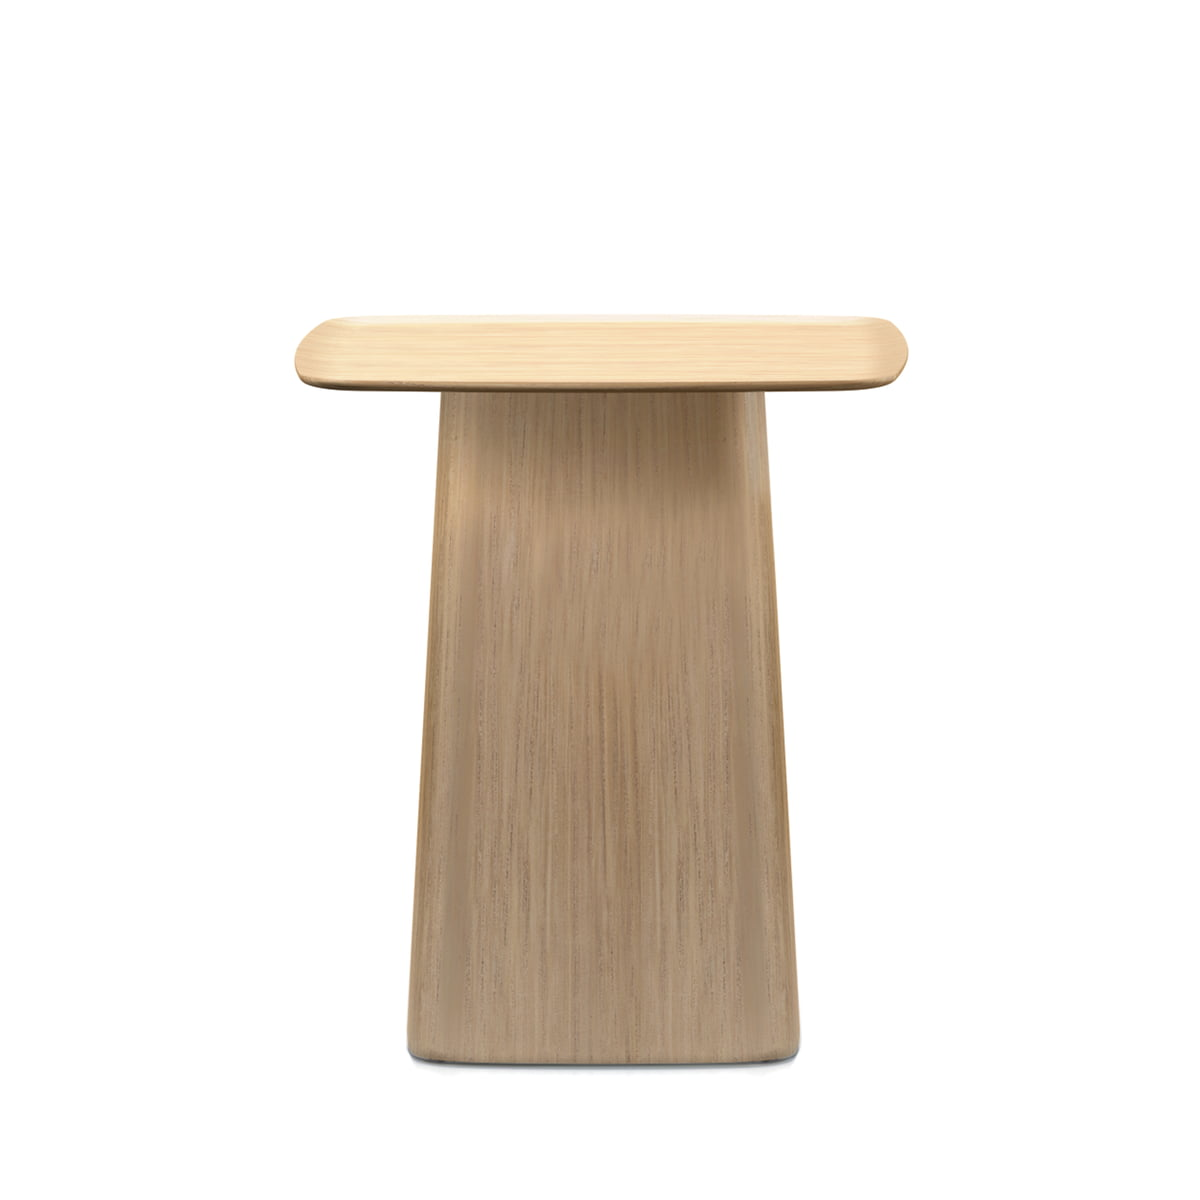 Beau Small Wooden Side Table From Vitra In Light Oak